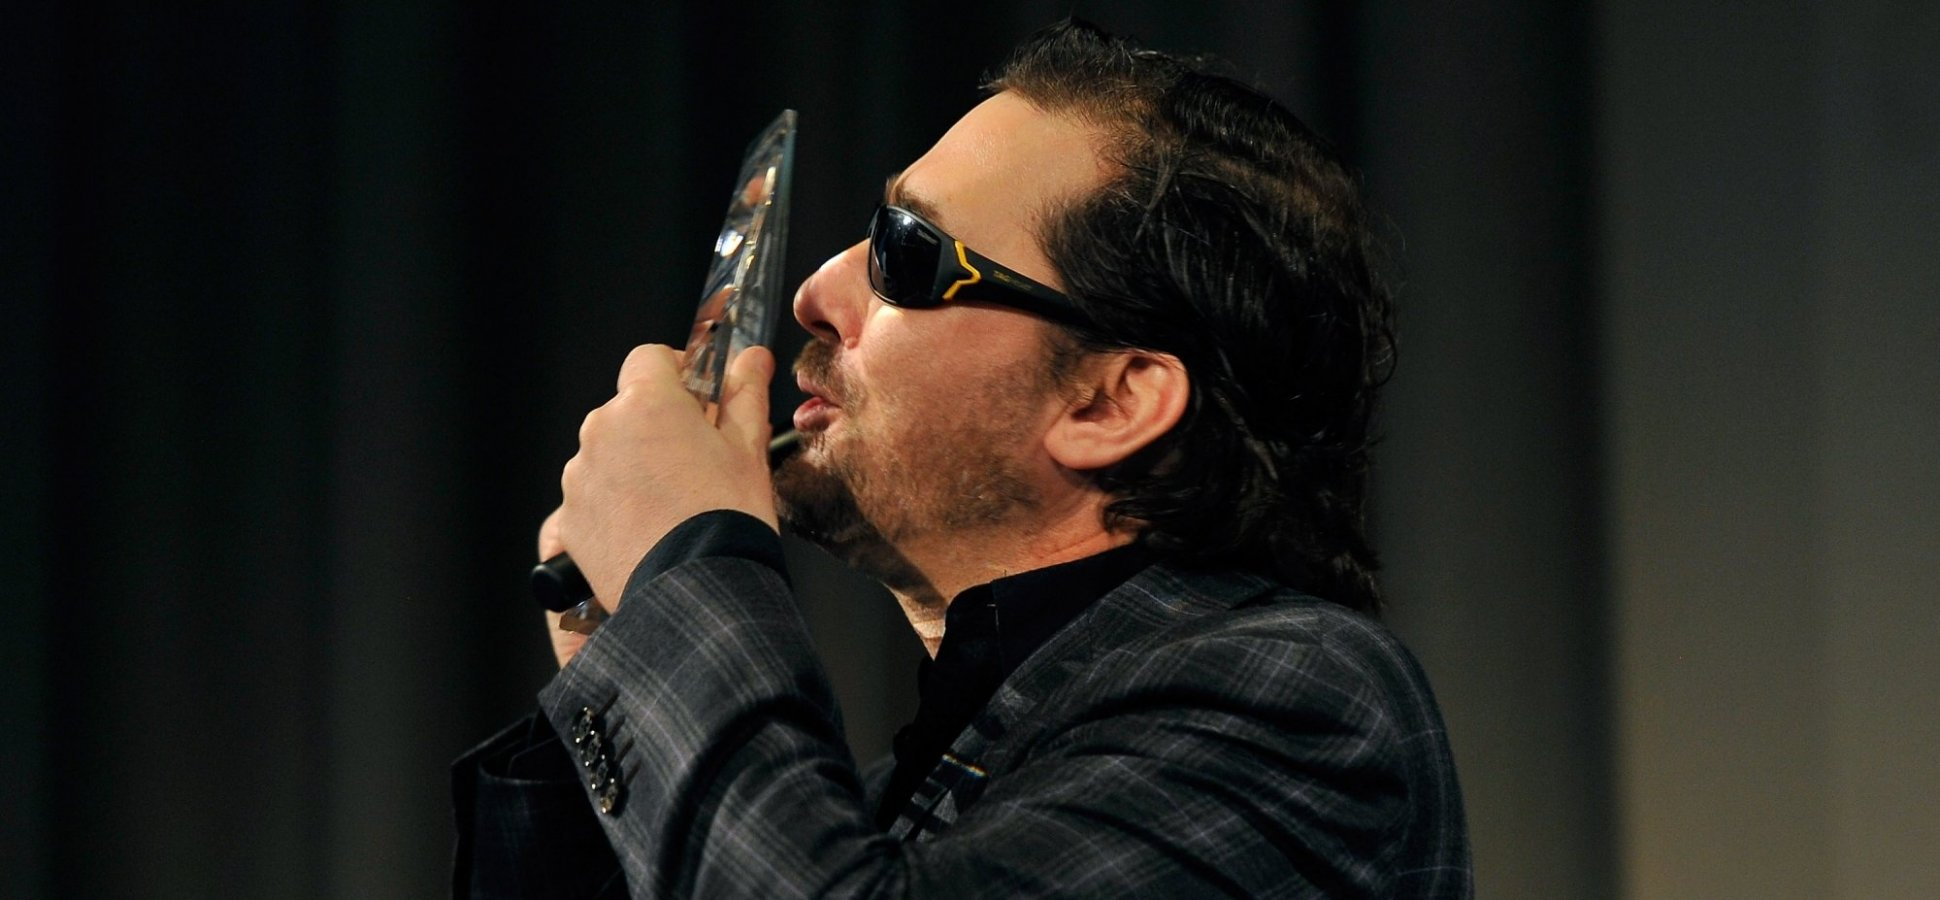 How Poker Champion Phil Hellmuth Controls His Emotions to Make Smart Decisions